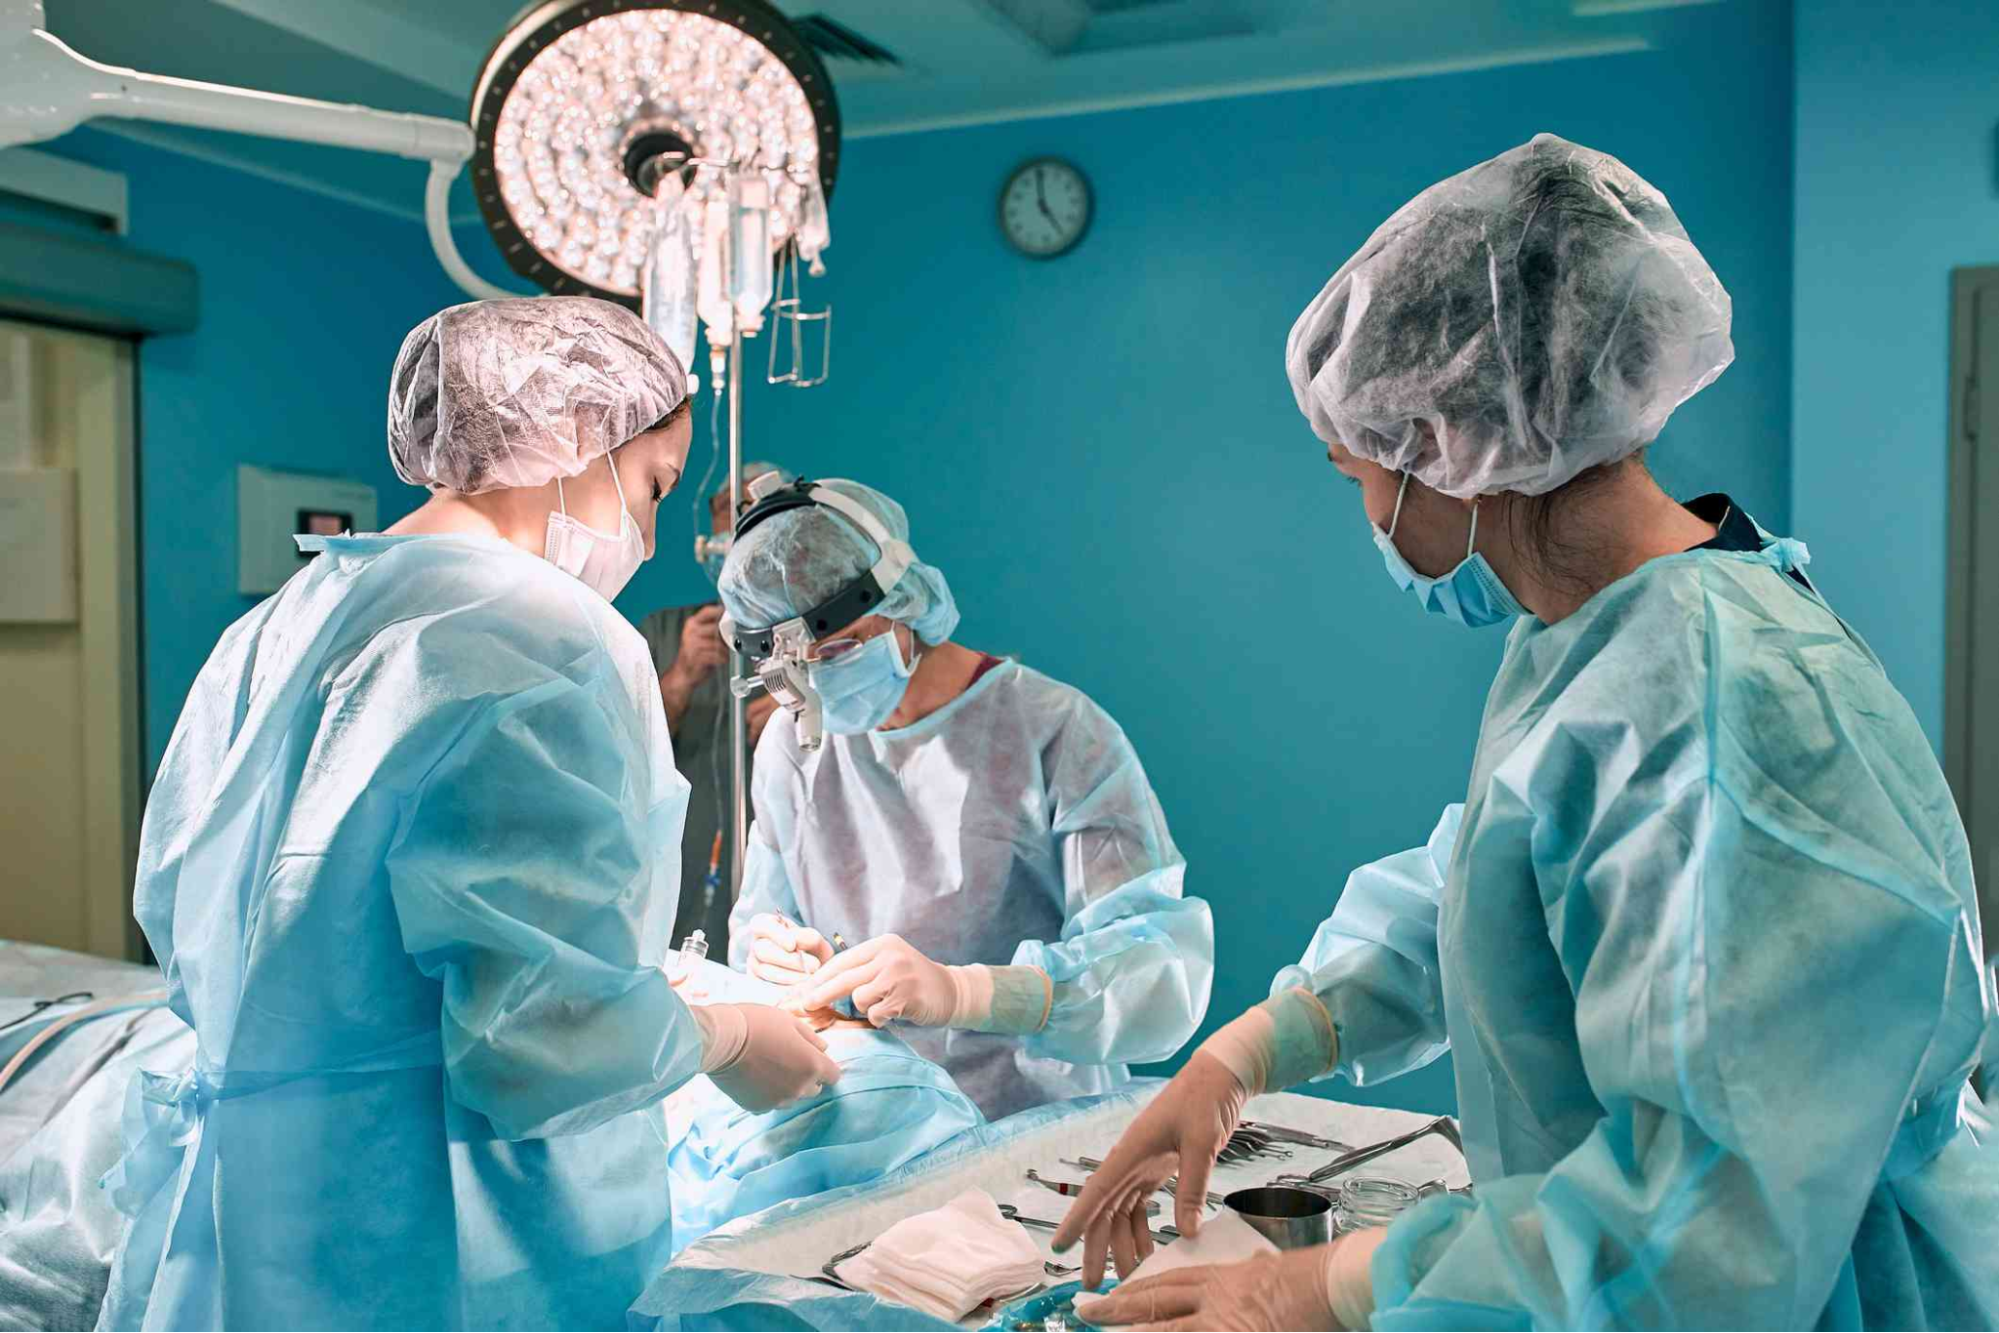 Get Shoulder replacement surgery in Hyderabad, shoulder replacement specialist near me